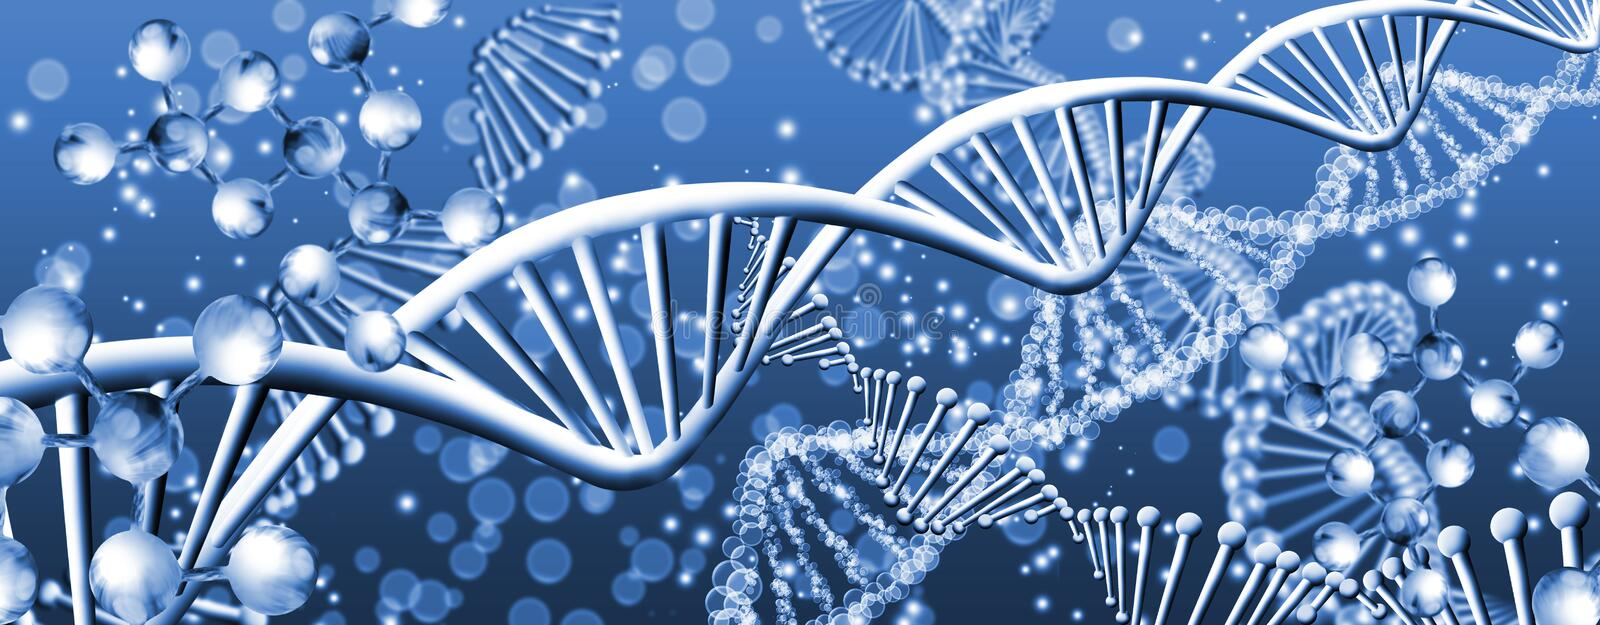 Abstract image of dna chain close up. 3D illustration royalty free illustration